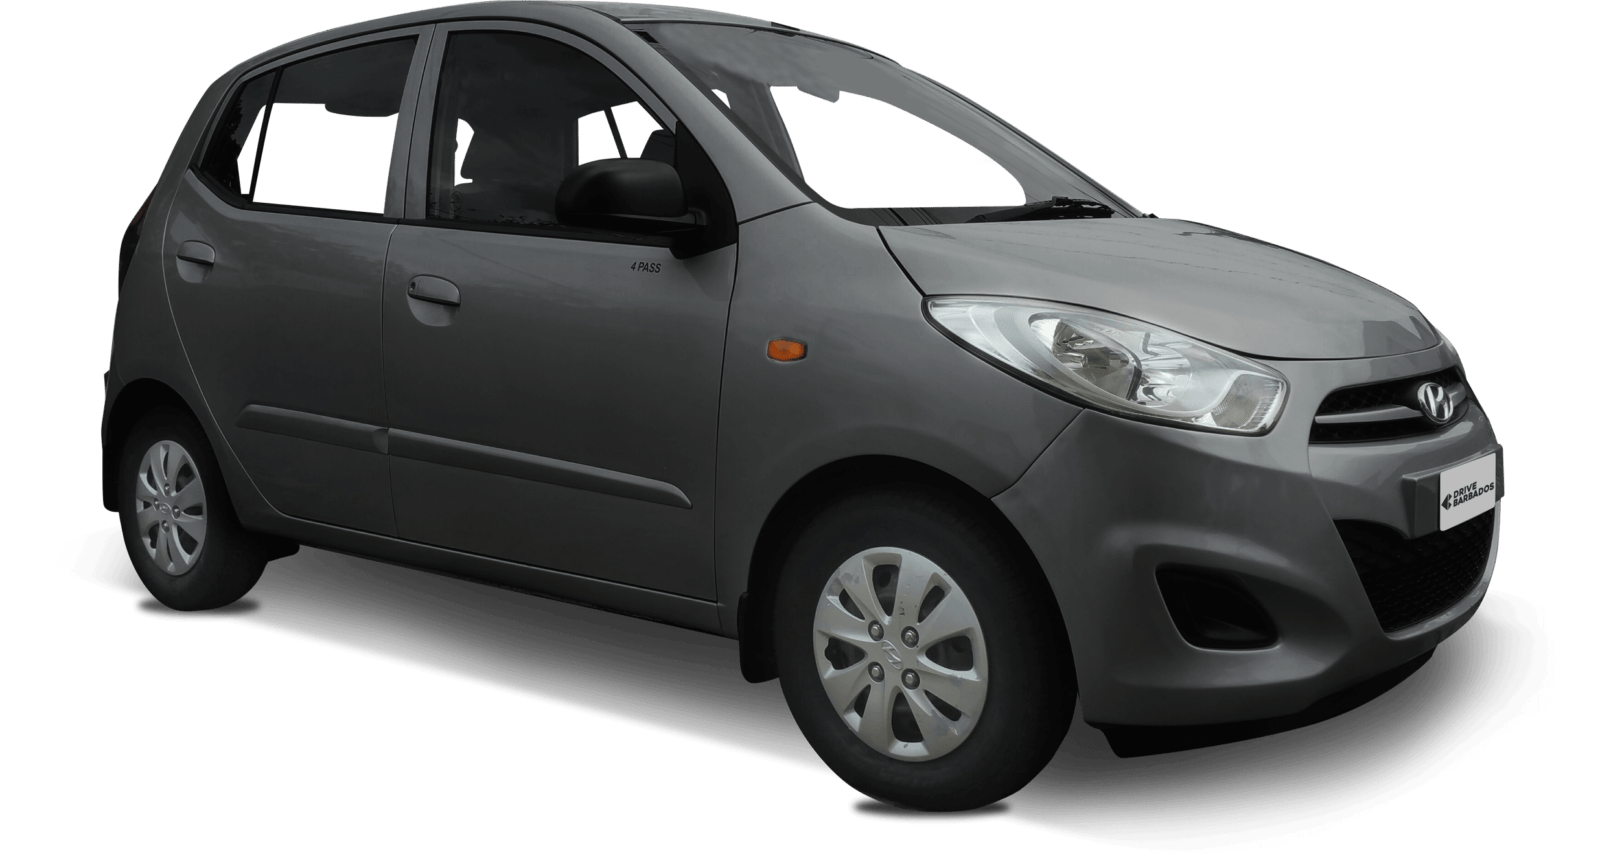 rental-car-economy-hatchback-Hyundai-I10-in-Barbados